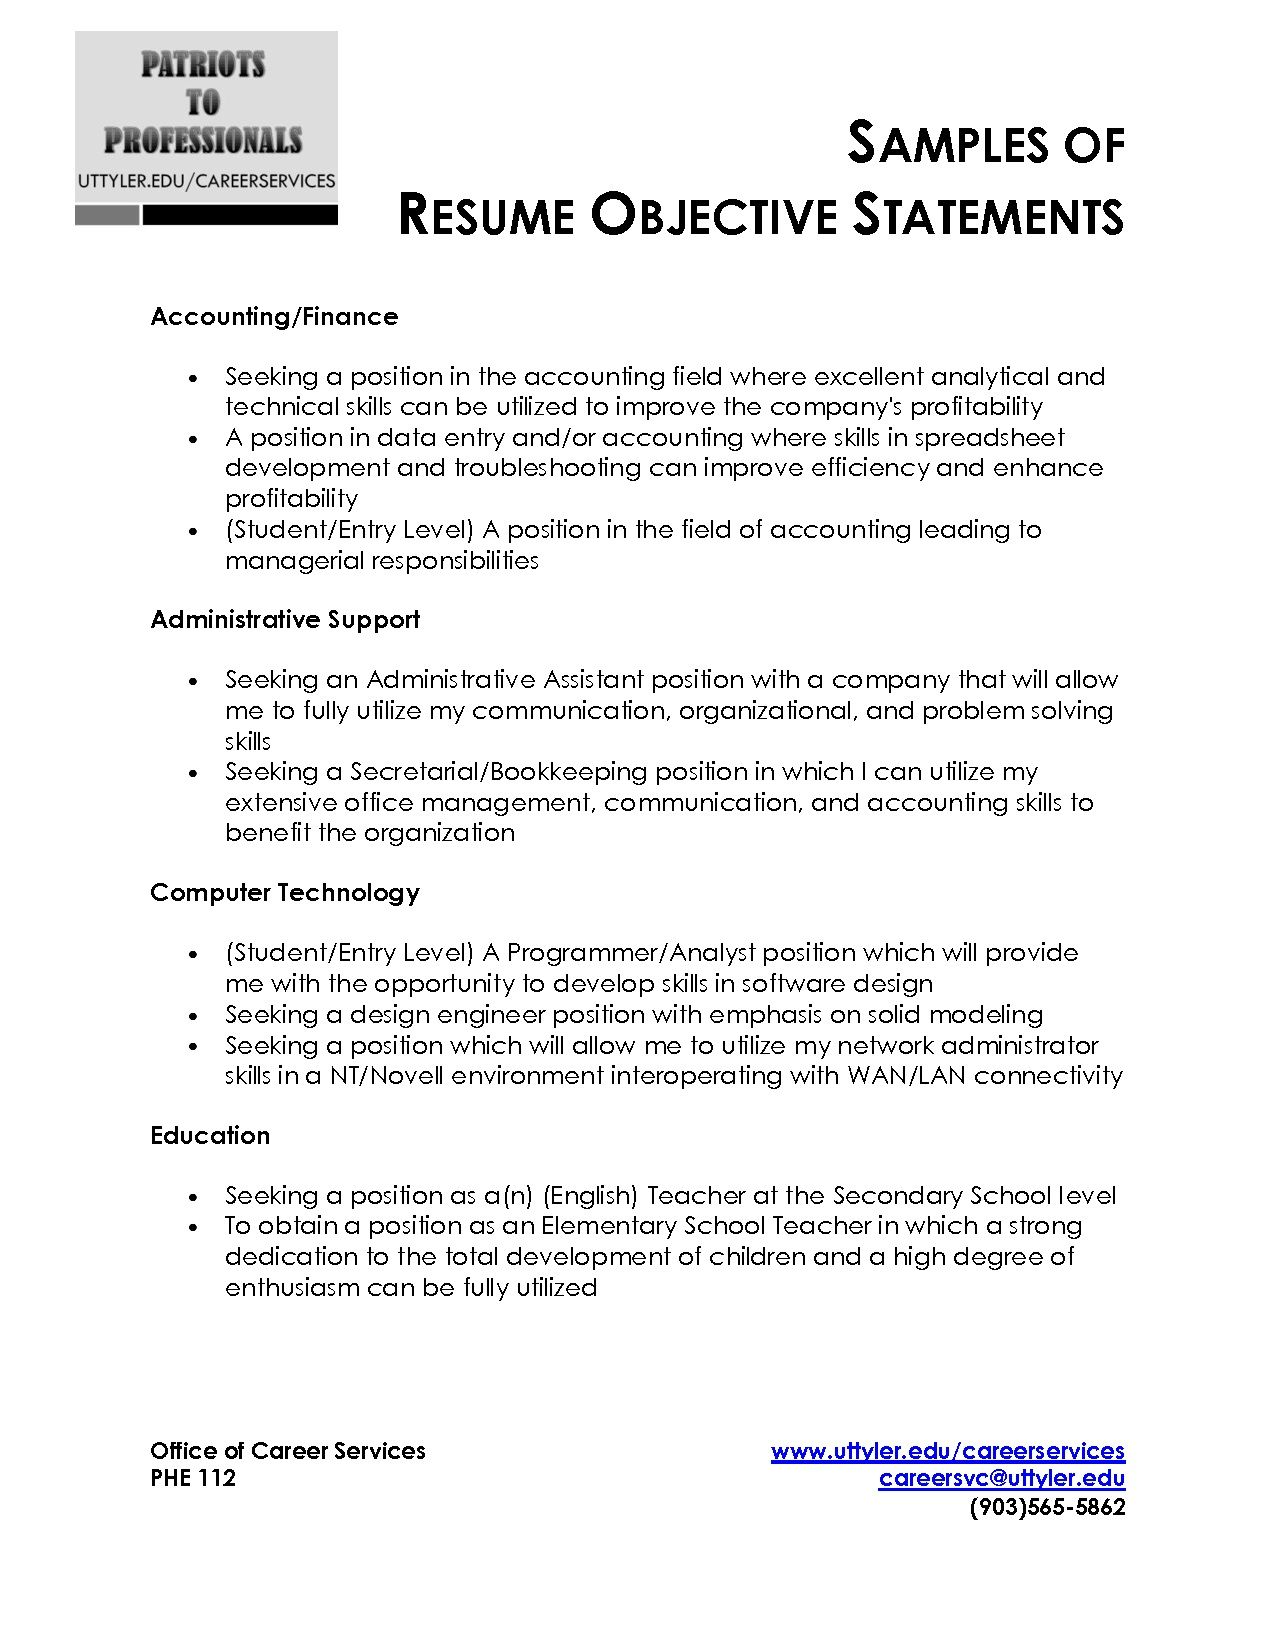 A Good Resume Objective Sample Resume Objective Statement  Adsbygoogle  Window